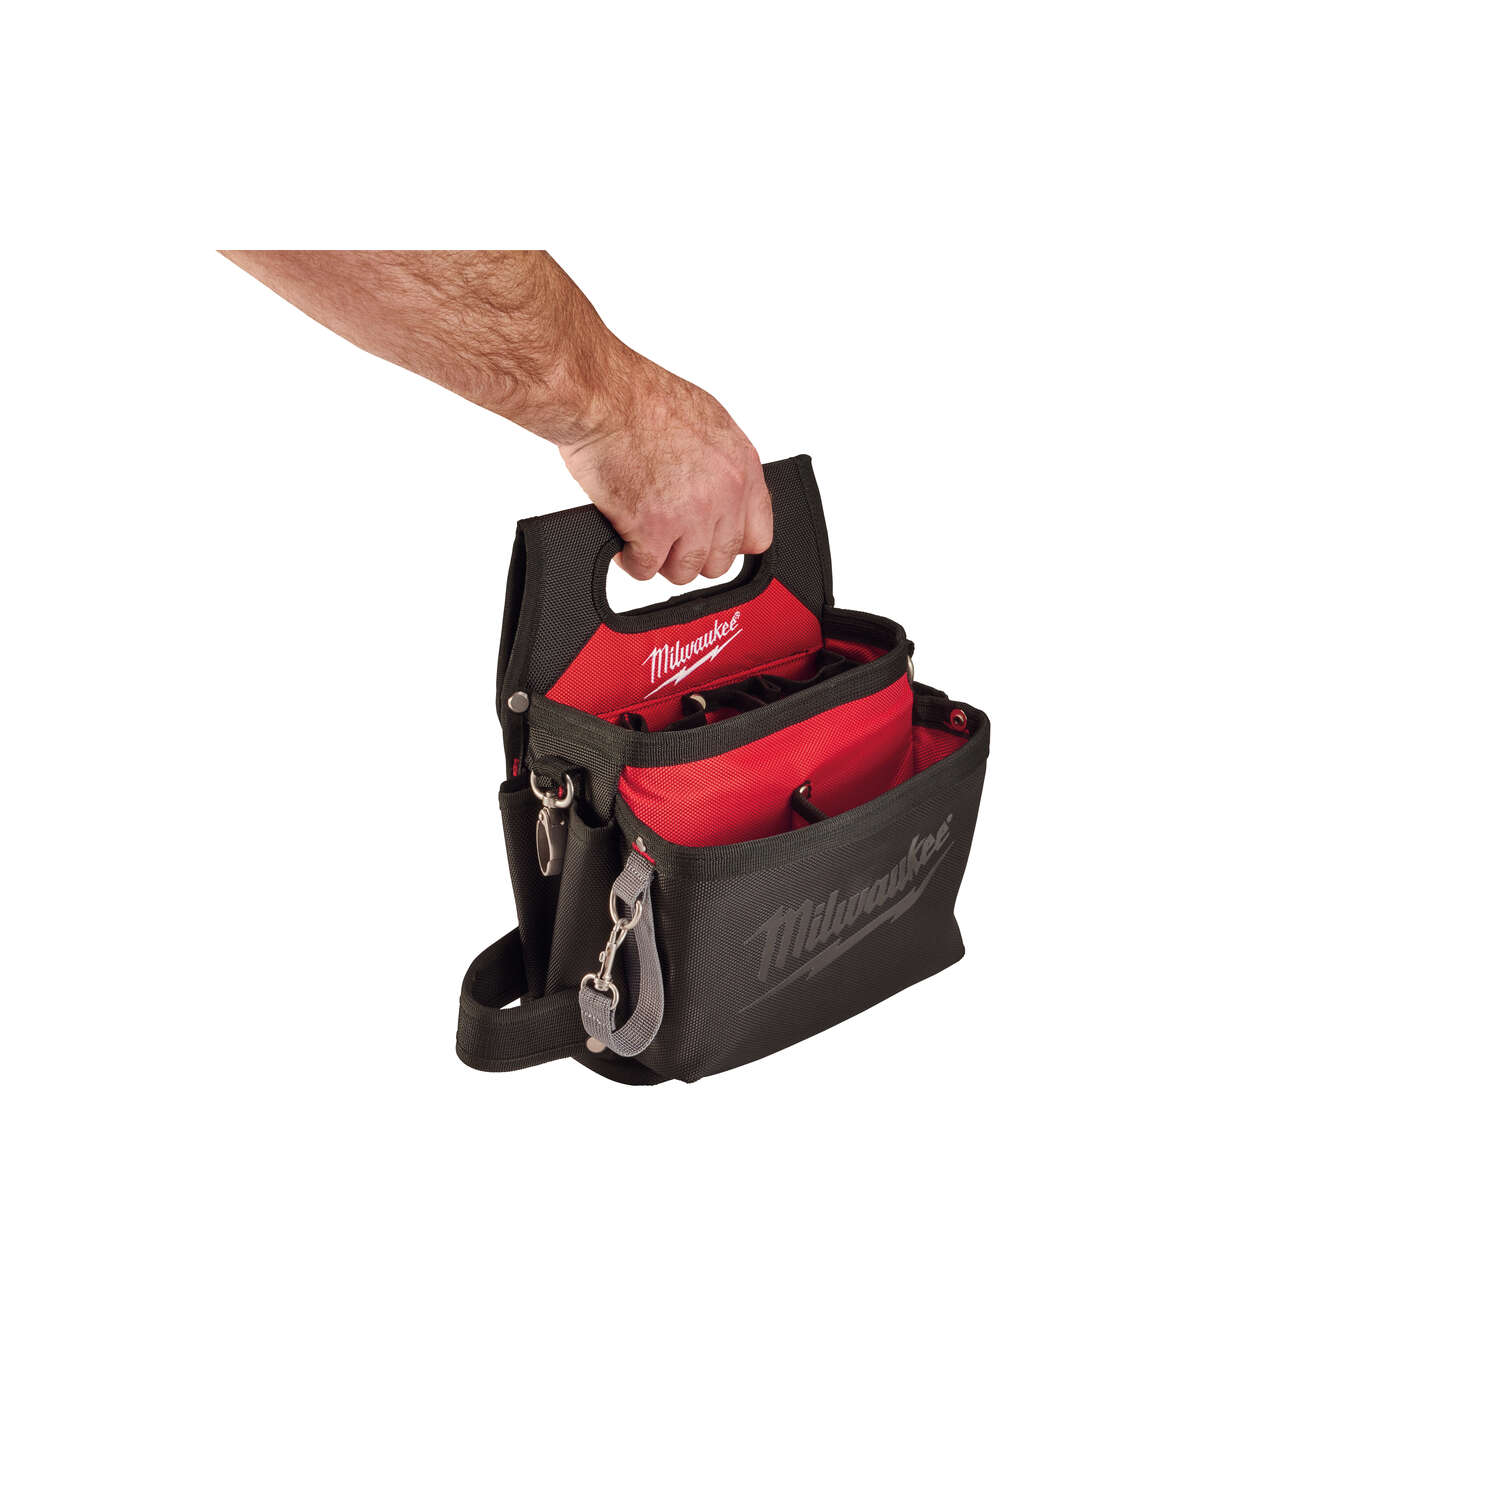 Milwaukee  12.8 in. W x 3.5 in. H Ballistic Nylon  Electrician's Pouch  15 pocket Black/Red  1 pc. R